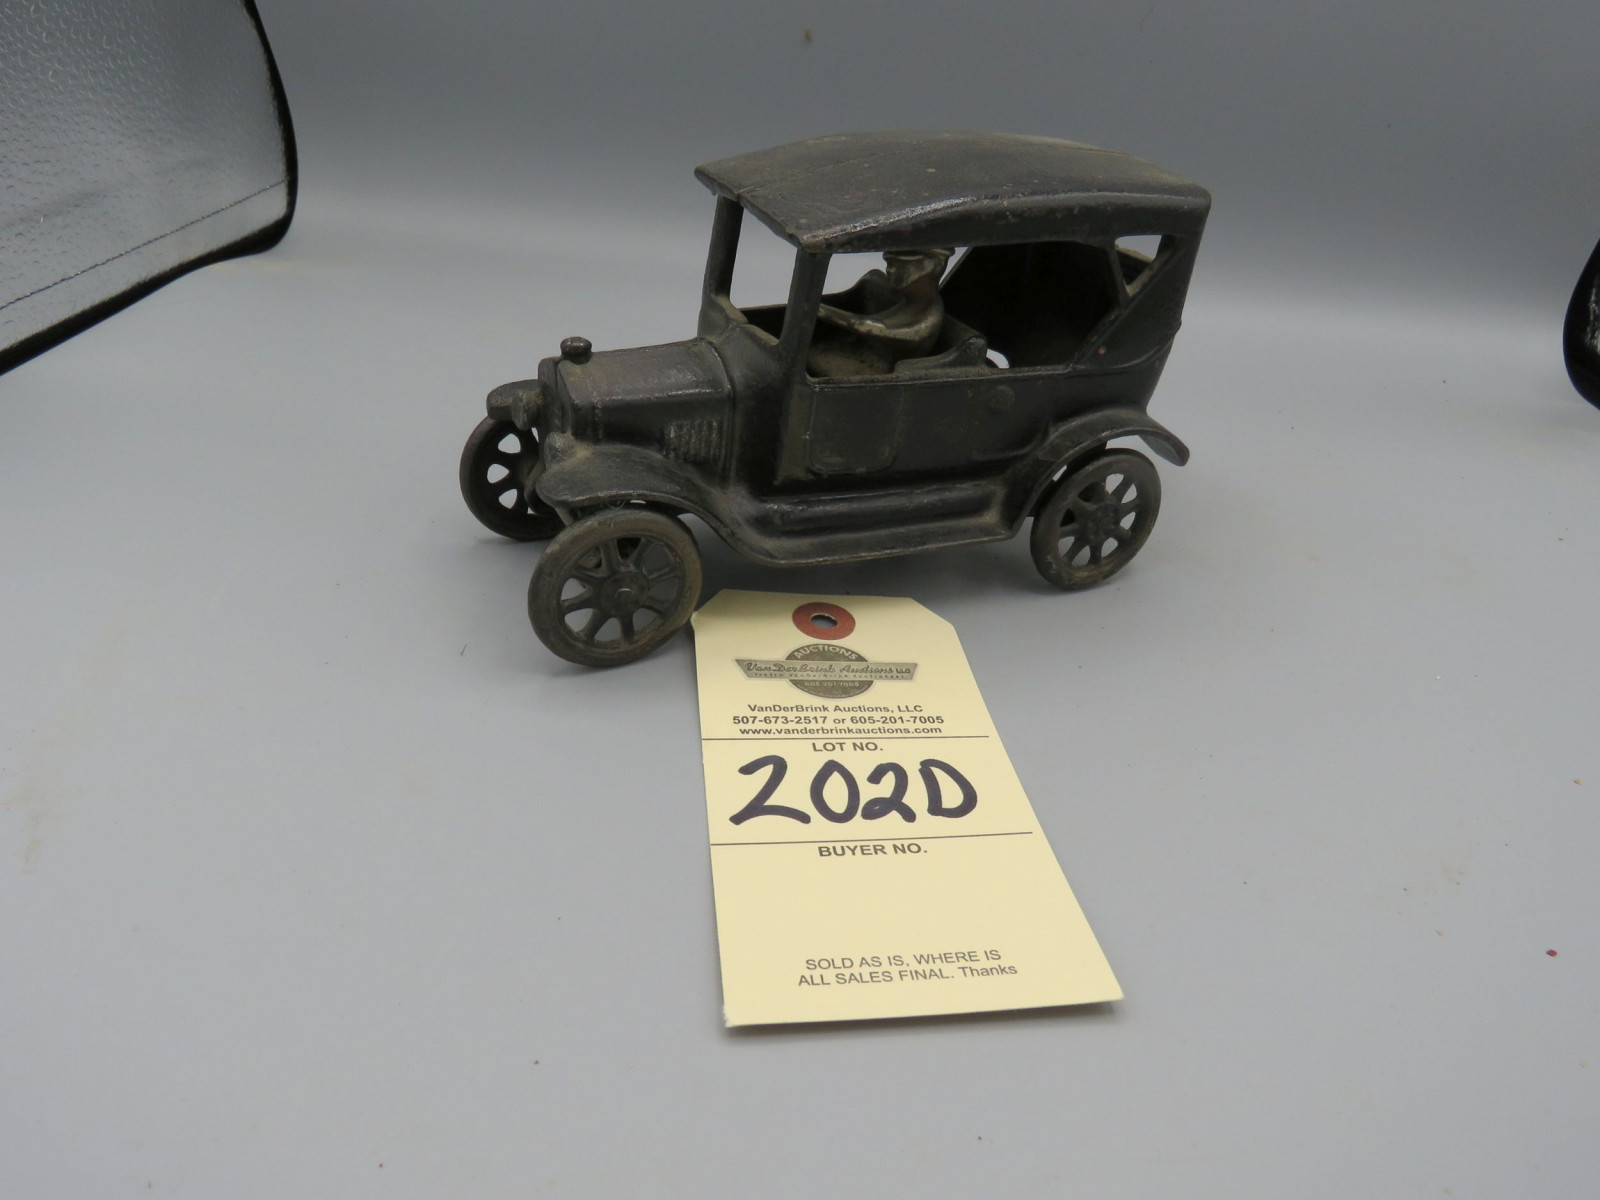 Arcade Cast Iron Chevrolet Superior Touring Car @1925 Approx. 7 inches - Image 1